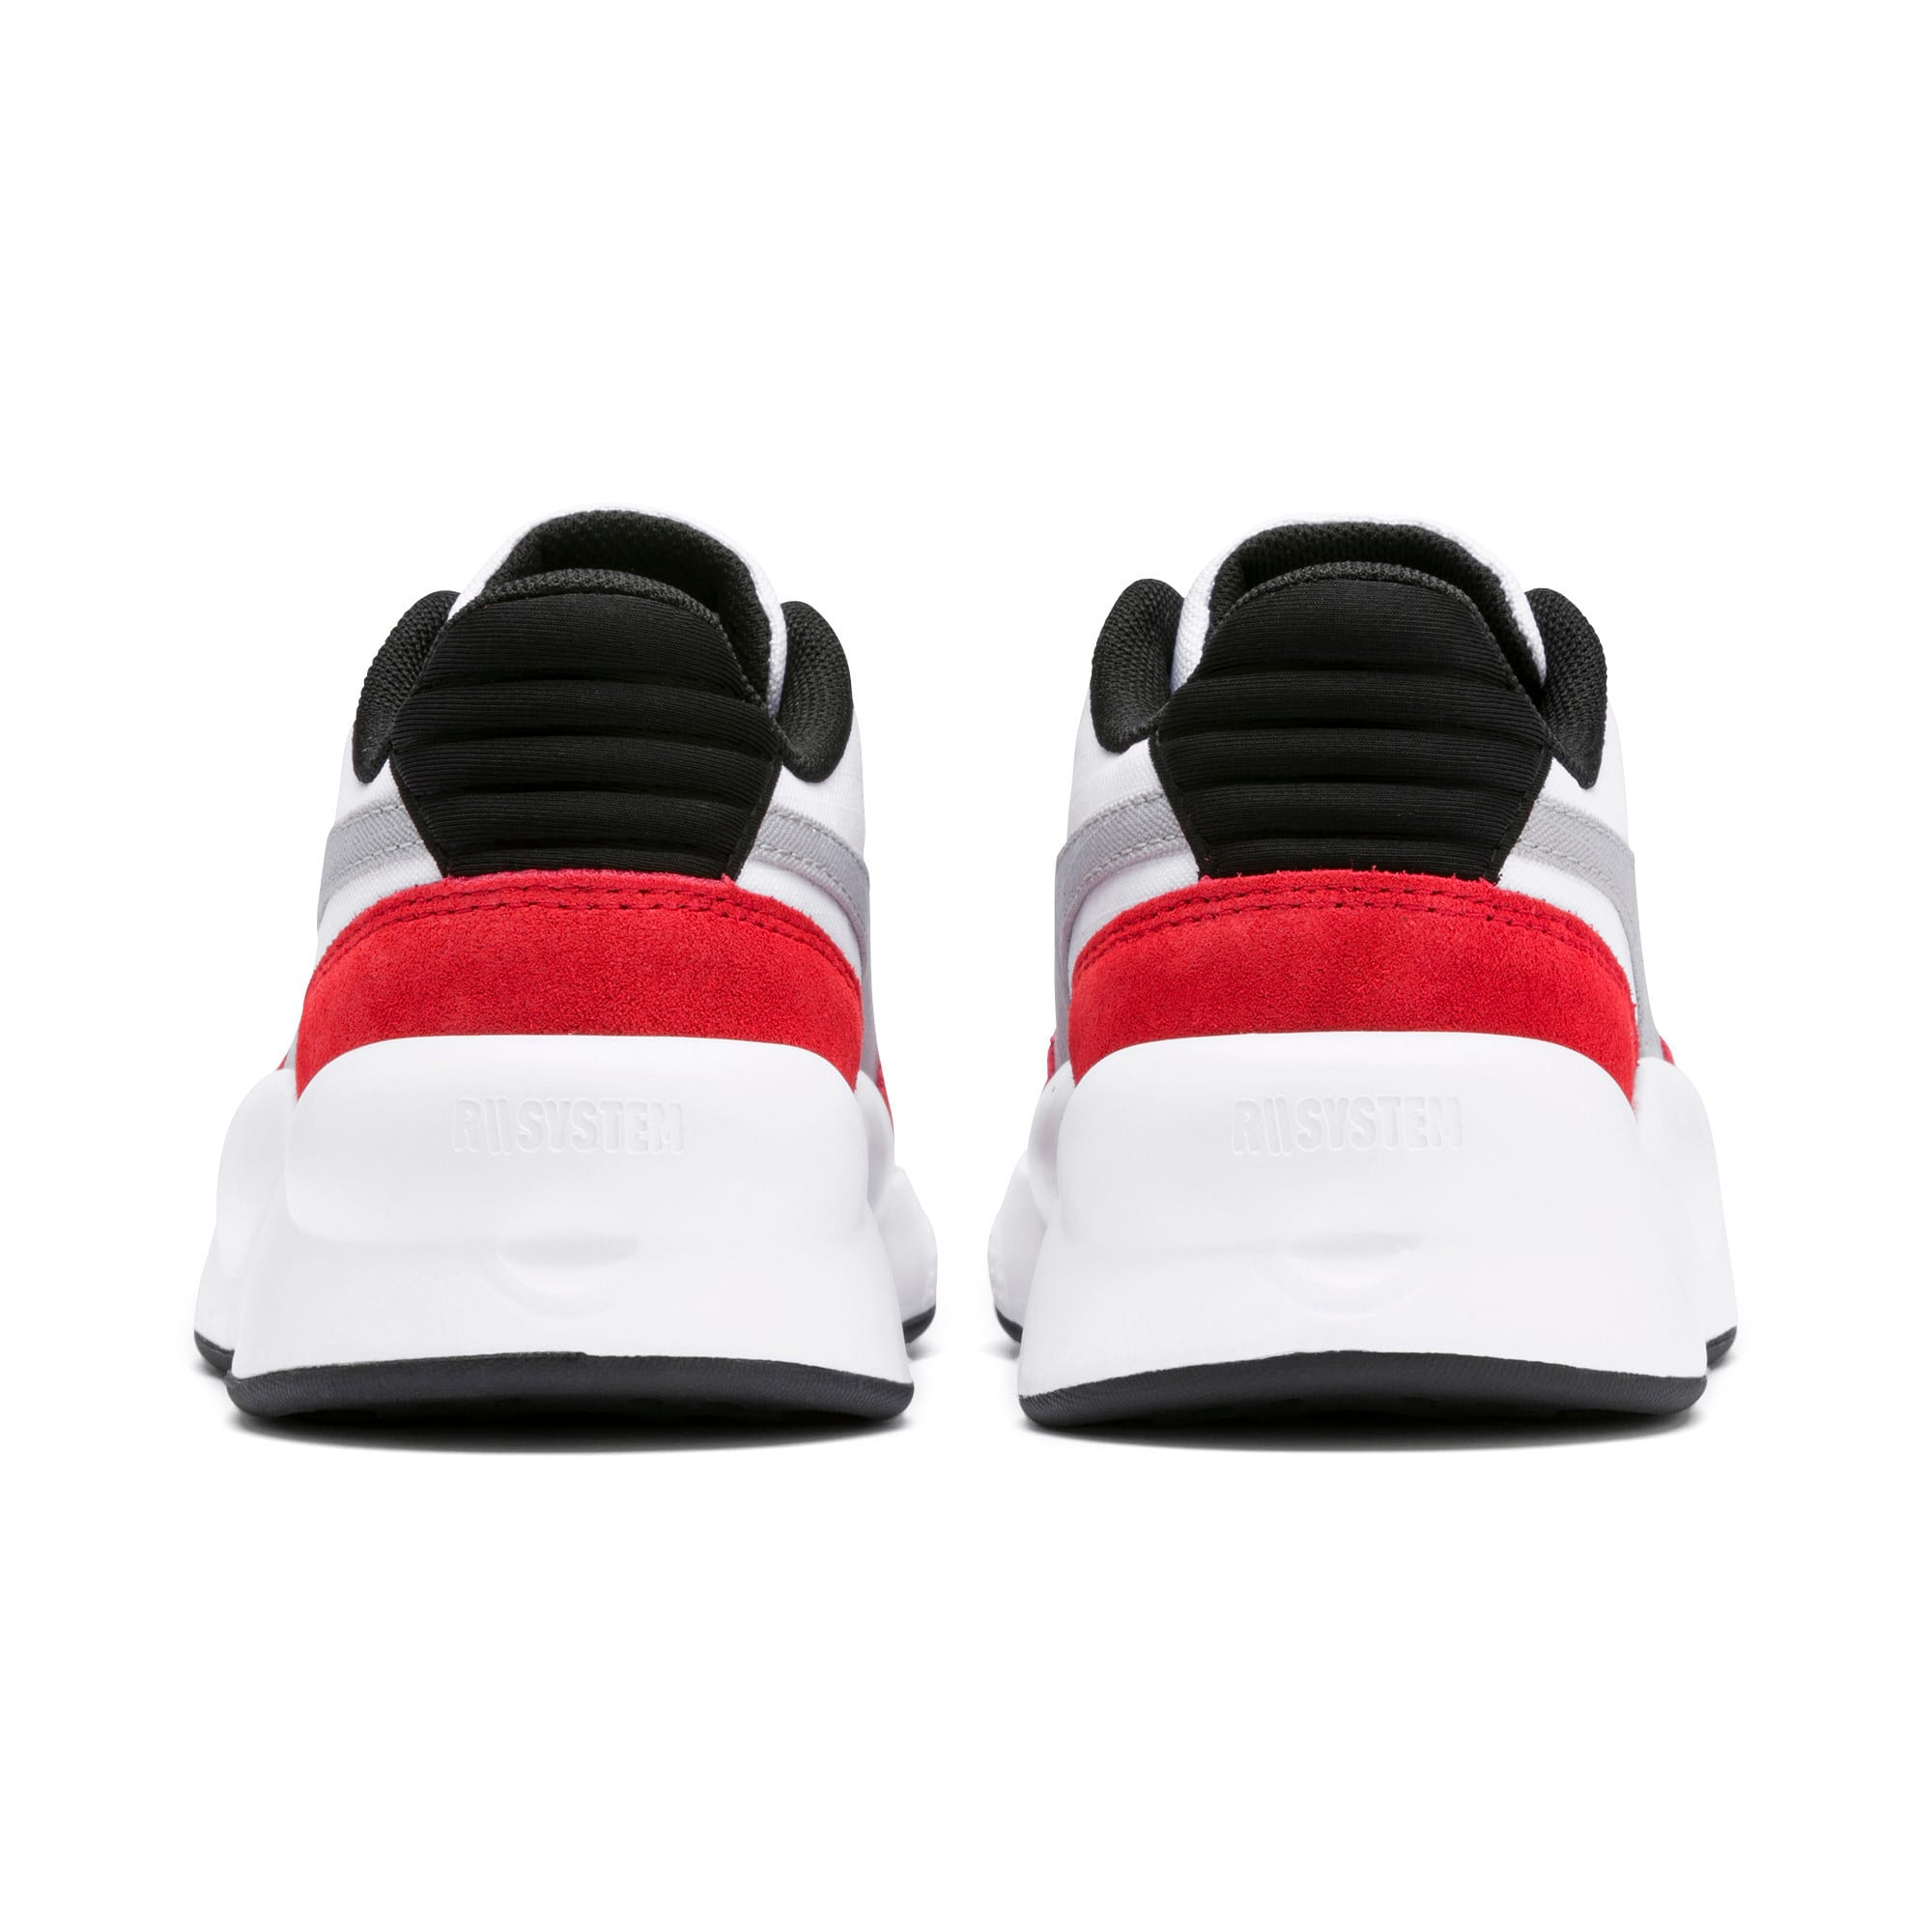 Thumbnail 3 of RS 9.8 Space Little Kids' Shoes, Puma White-High Risk Red, medium